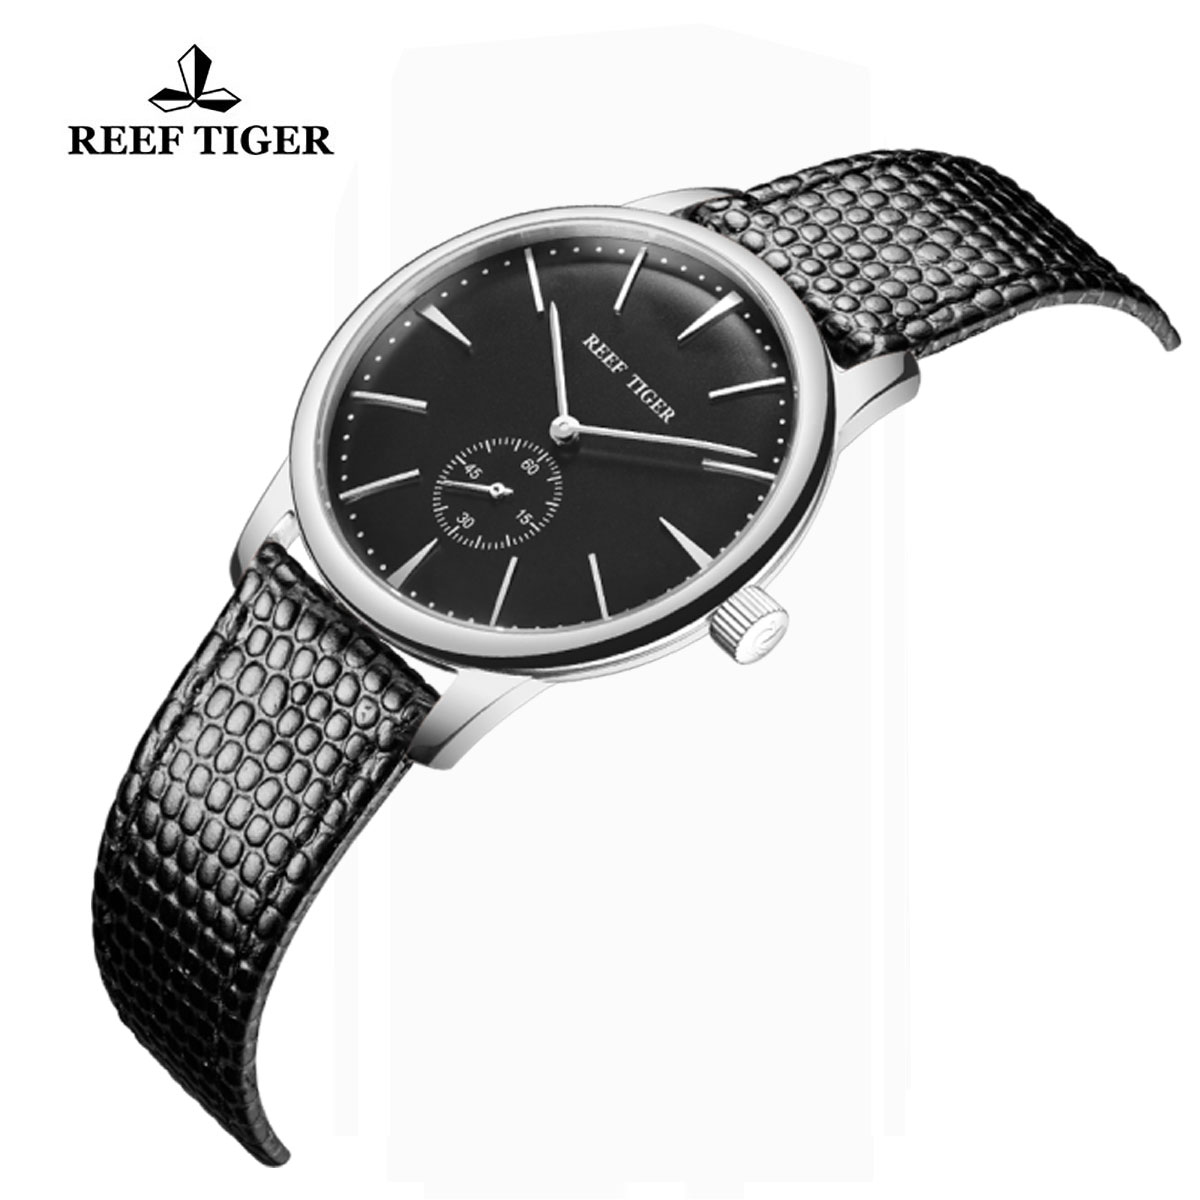 Reef Tiger Vintage Couple Watch Black Dial Stainless Steel Calfskin Leather RGA820-YBB